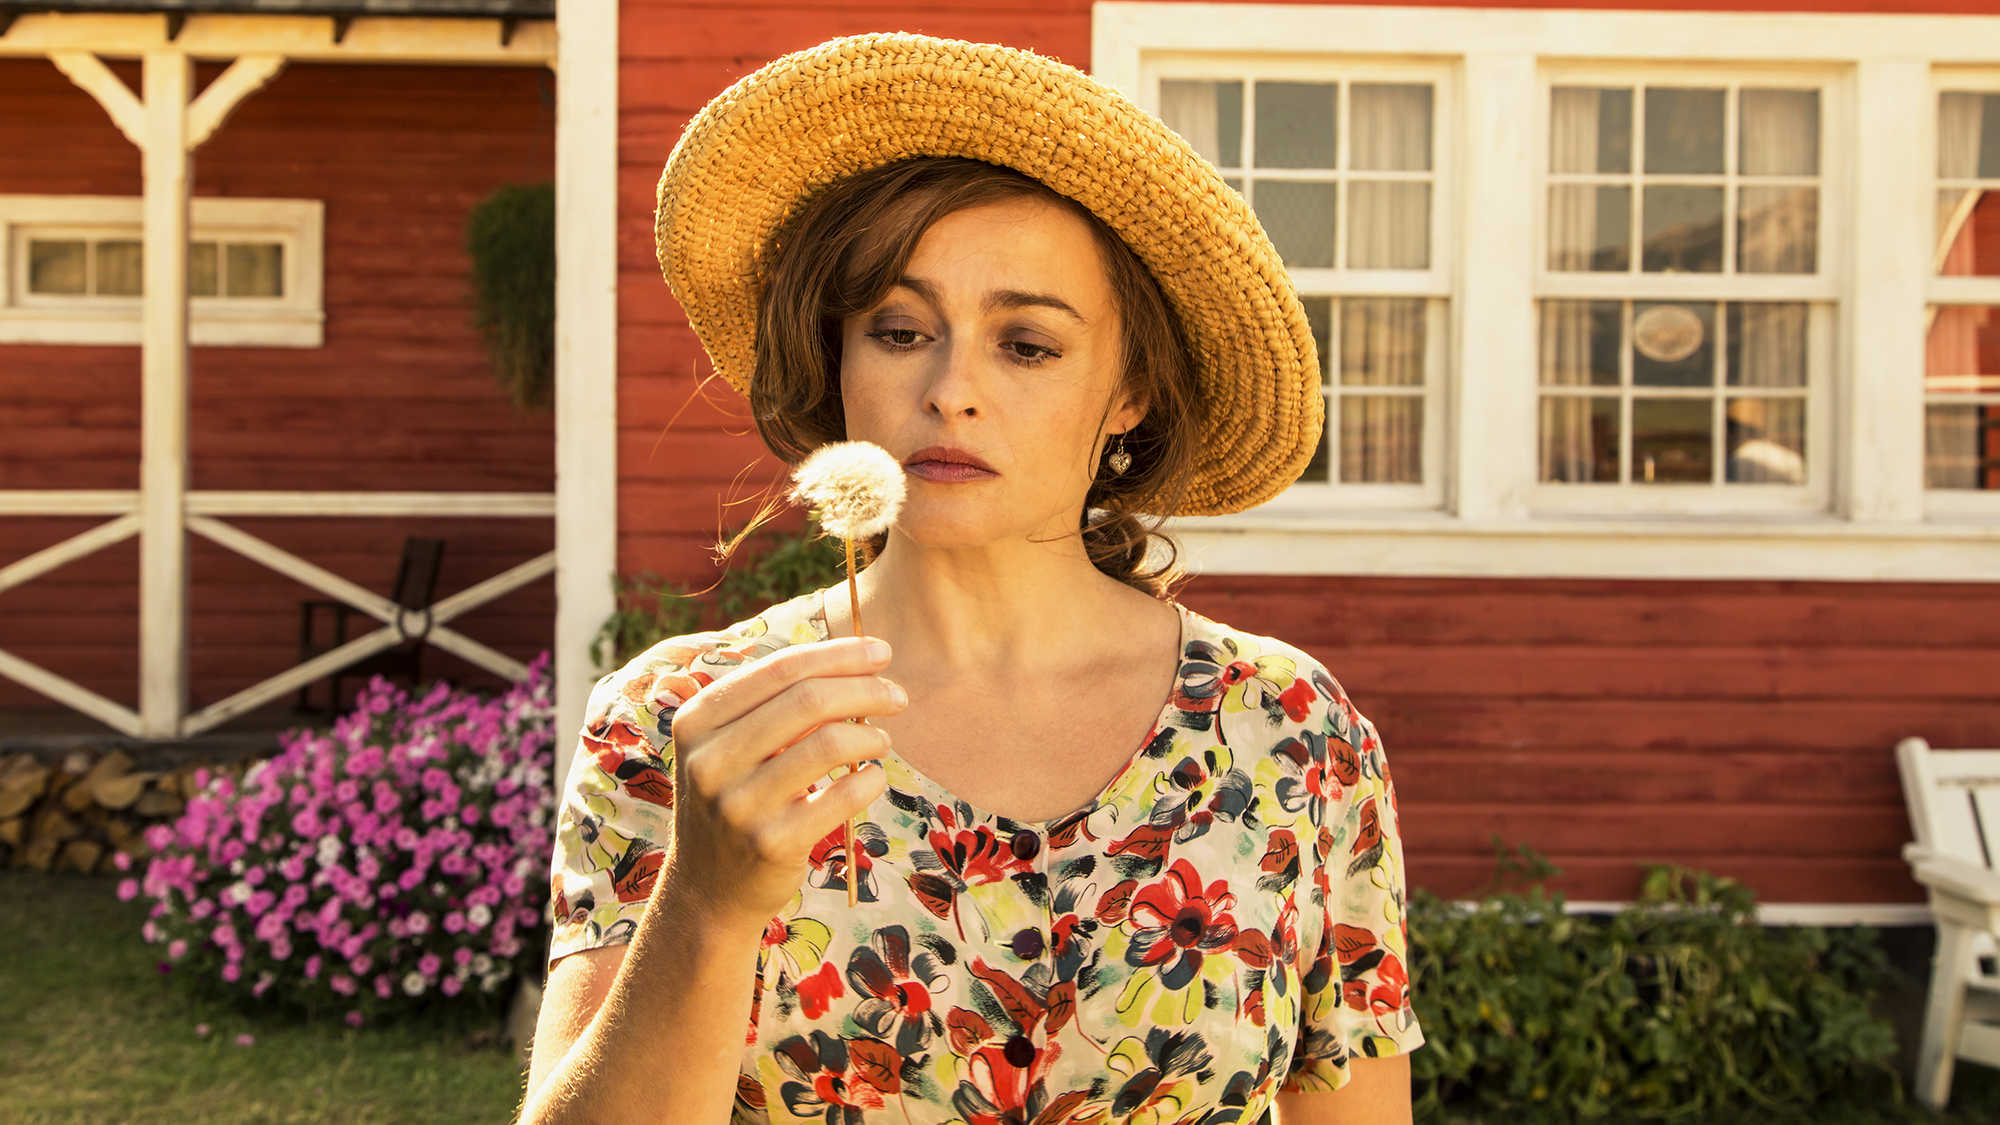 The Young and Prodigious T.S. Spivet 3D (image 4)